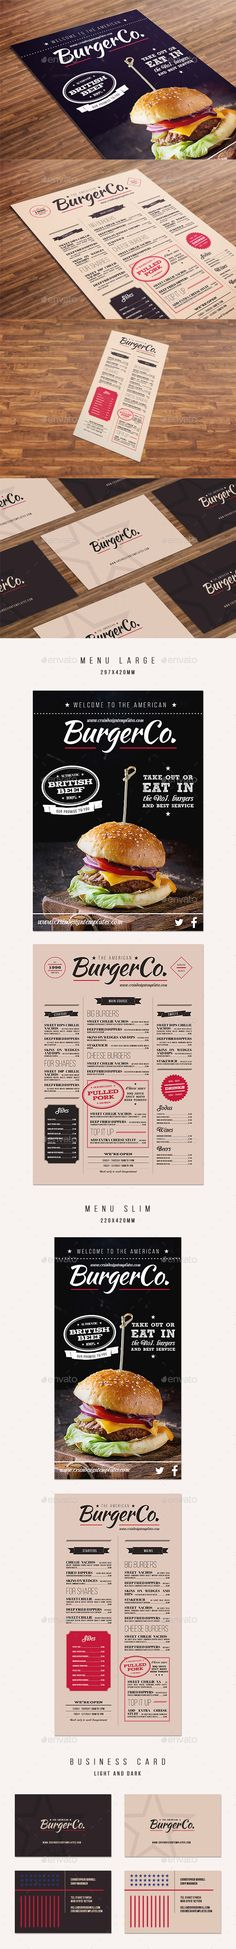 American Burger Menu Template #design Buy Now: http://graphicriver.net/item/american-burger-menu/12795042?ref=ksioks